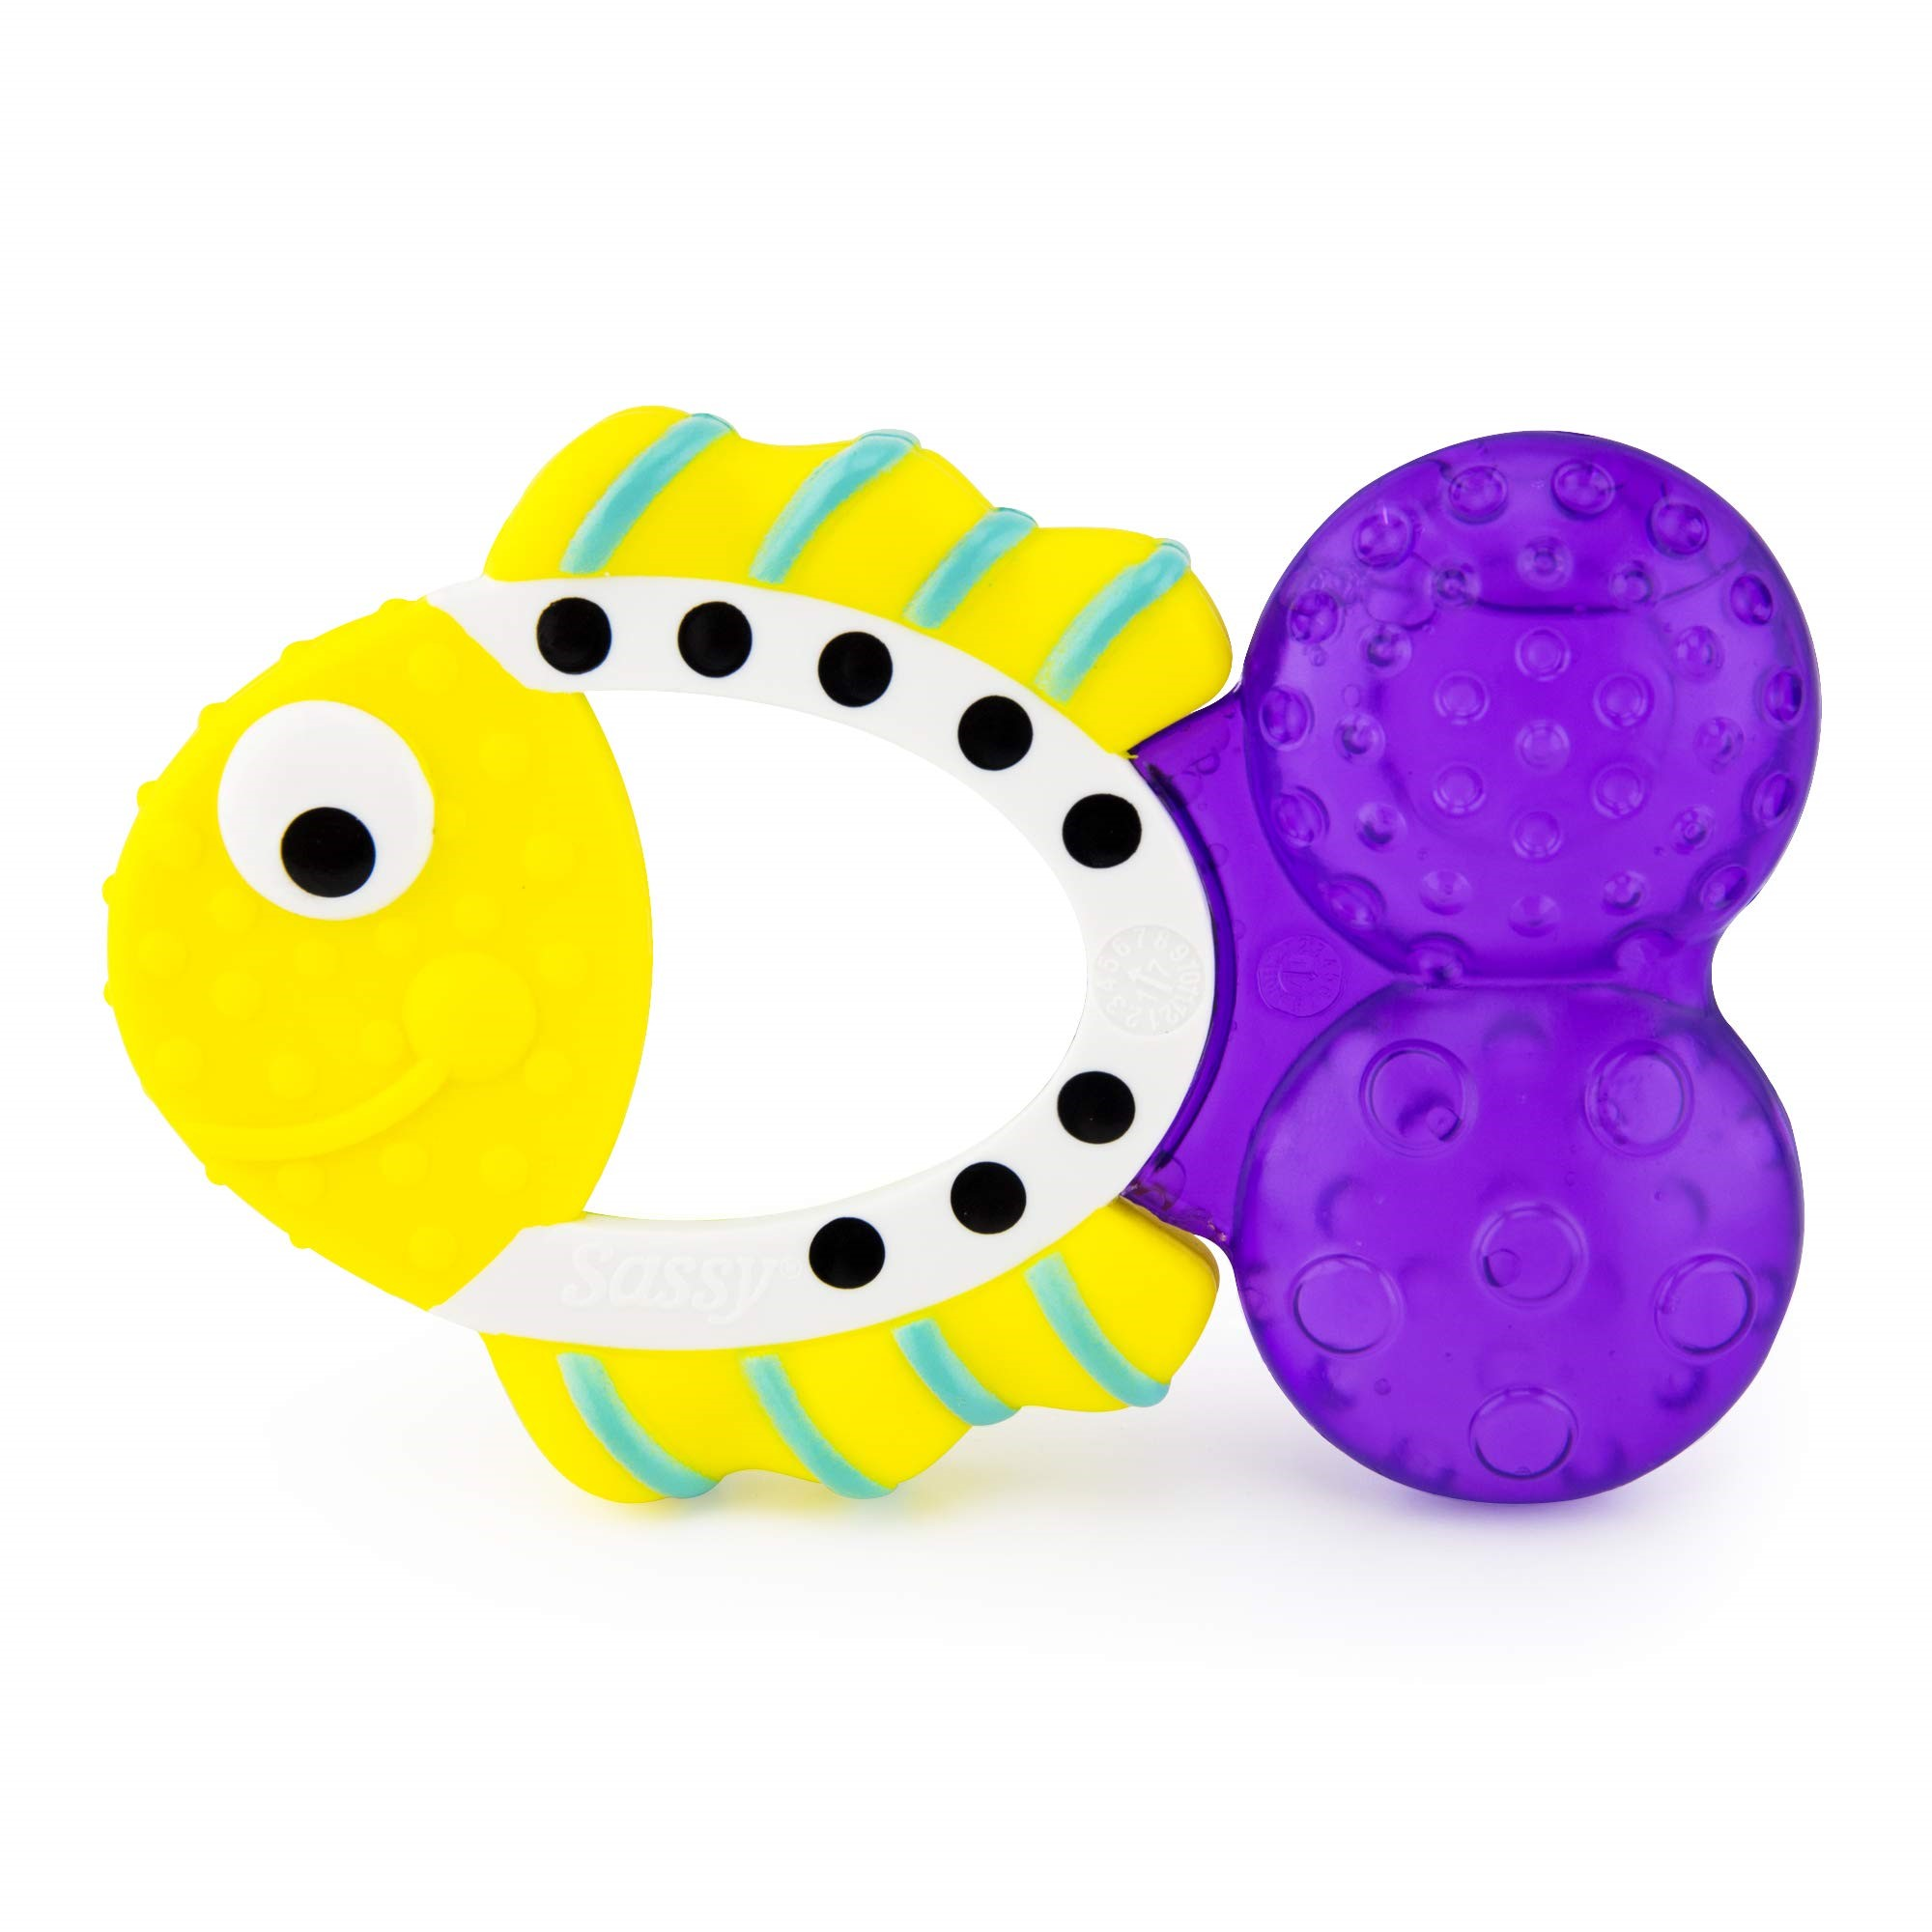 Sassy Teething Tail Fish Baby Sore Gums Texture Water Fill Easy Grip Teether 3+m